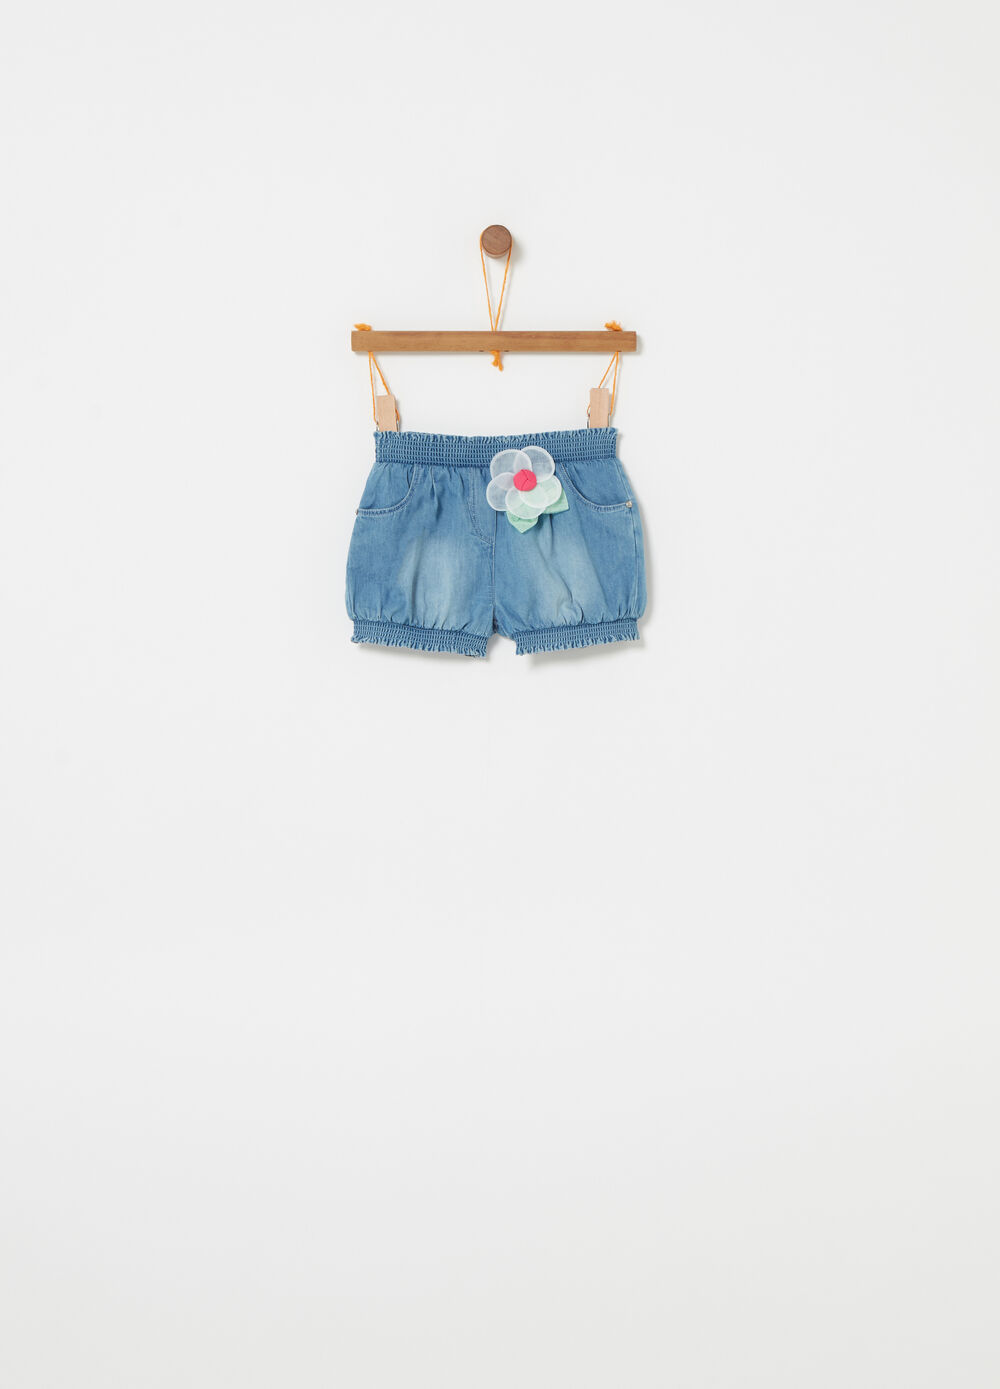 Denim shorts with diamantés, rivets and flower